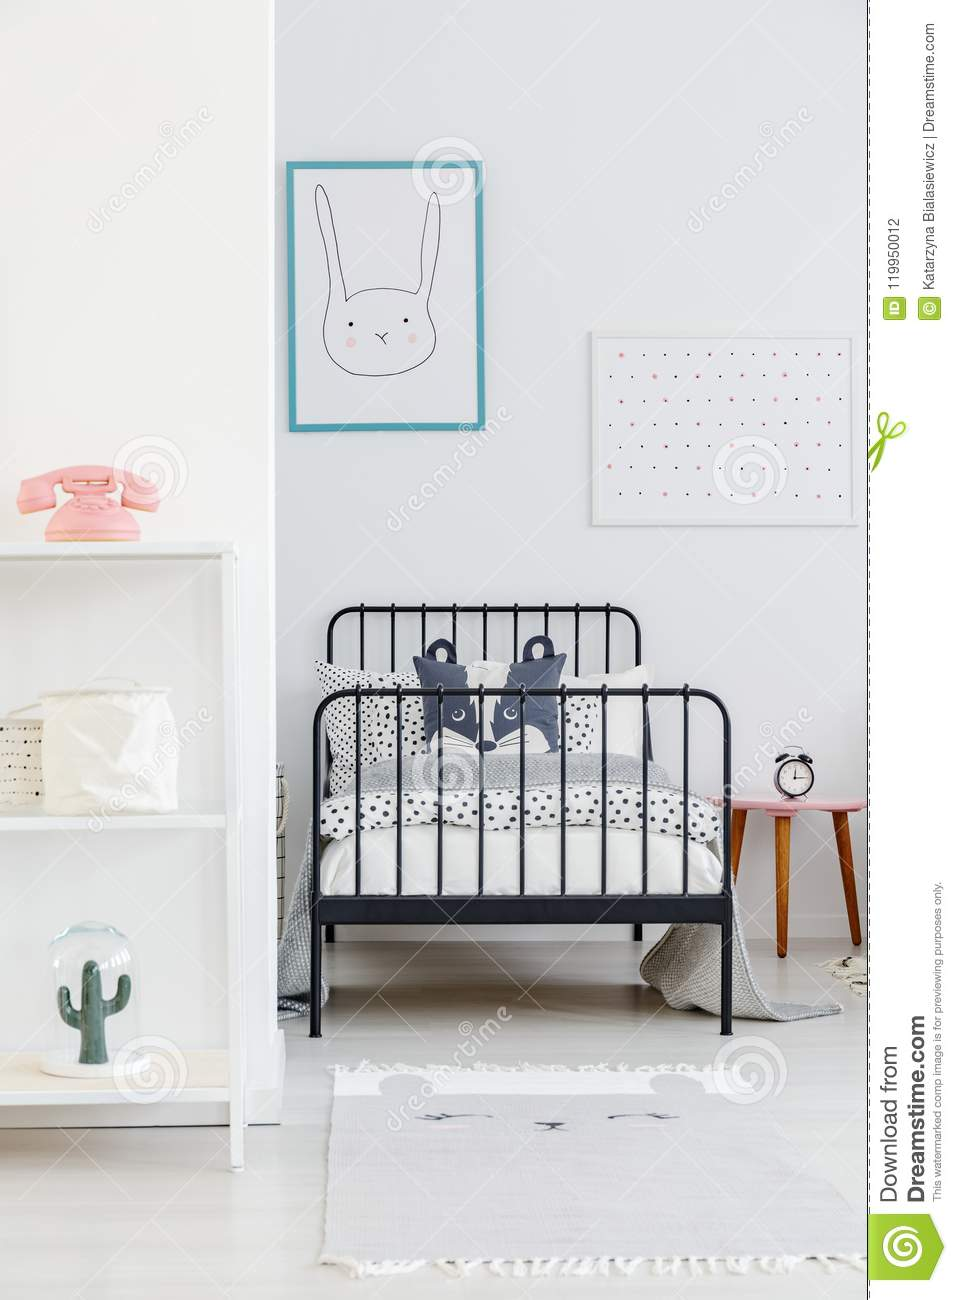 Simple Bed Childs Bed With Black Metal Frame In A Small Simple Bedroom In